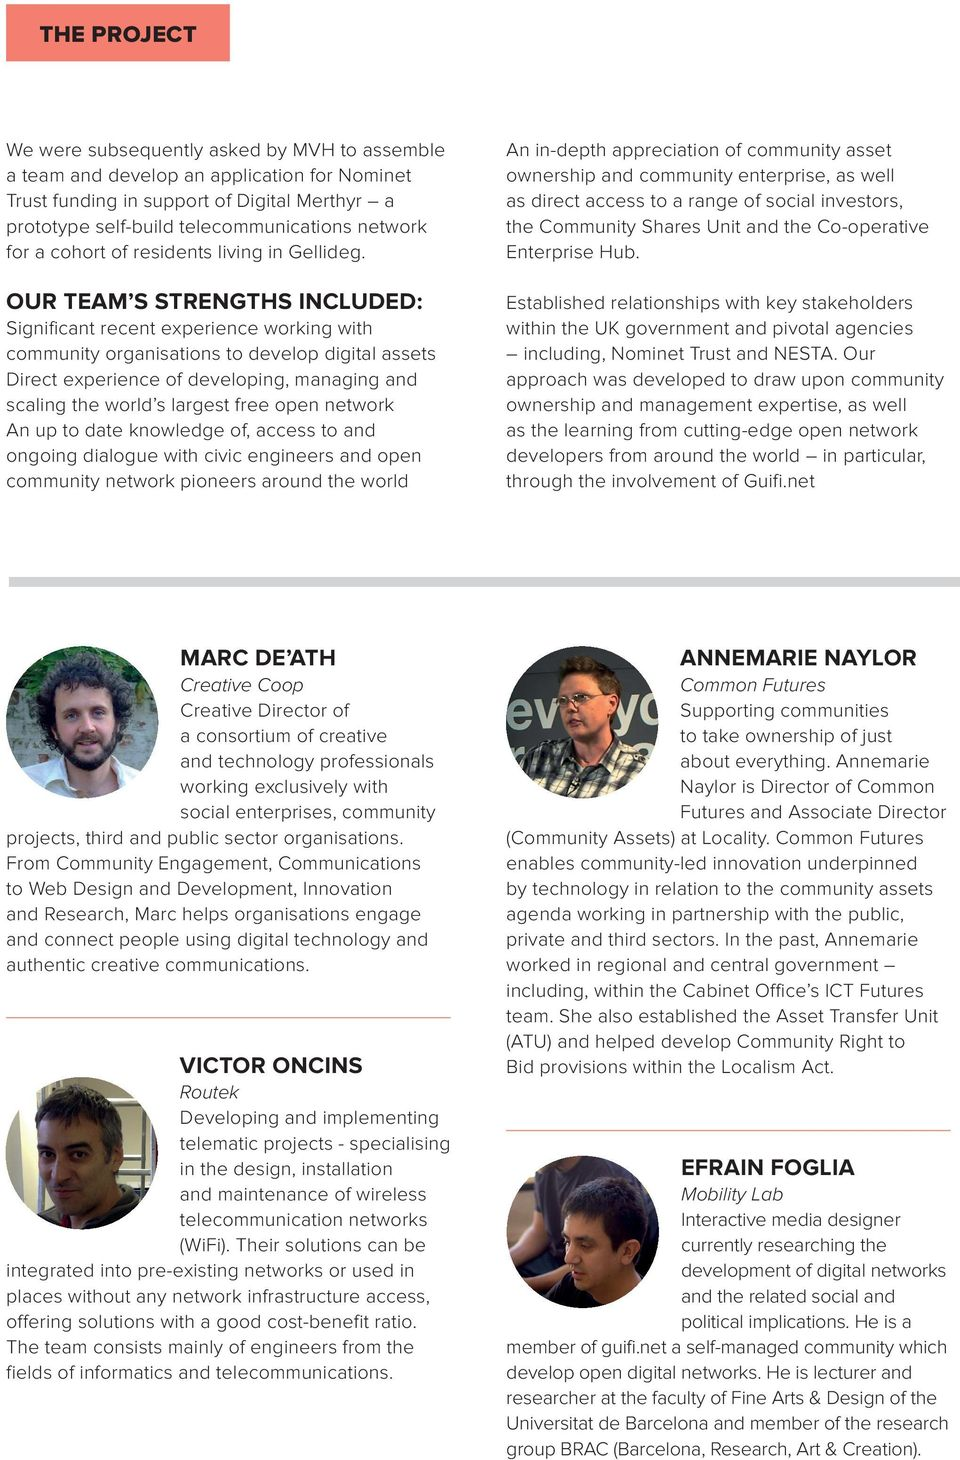 OUR TEAM S STRENGTHS INCLUDED: Significant recent experience working with community organisations to develop digital assets Direct experience of developing, managing and scaling the world s largest